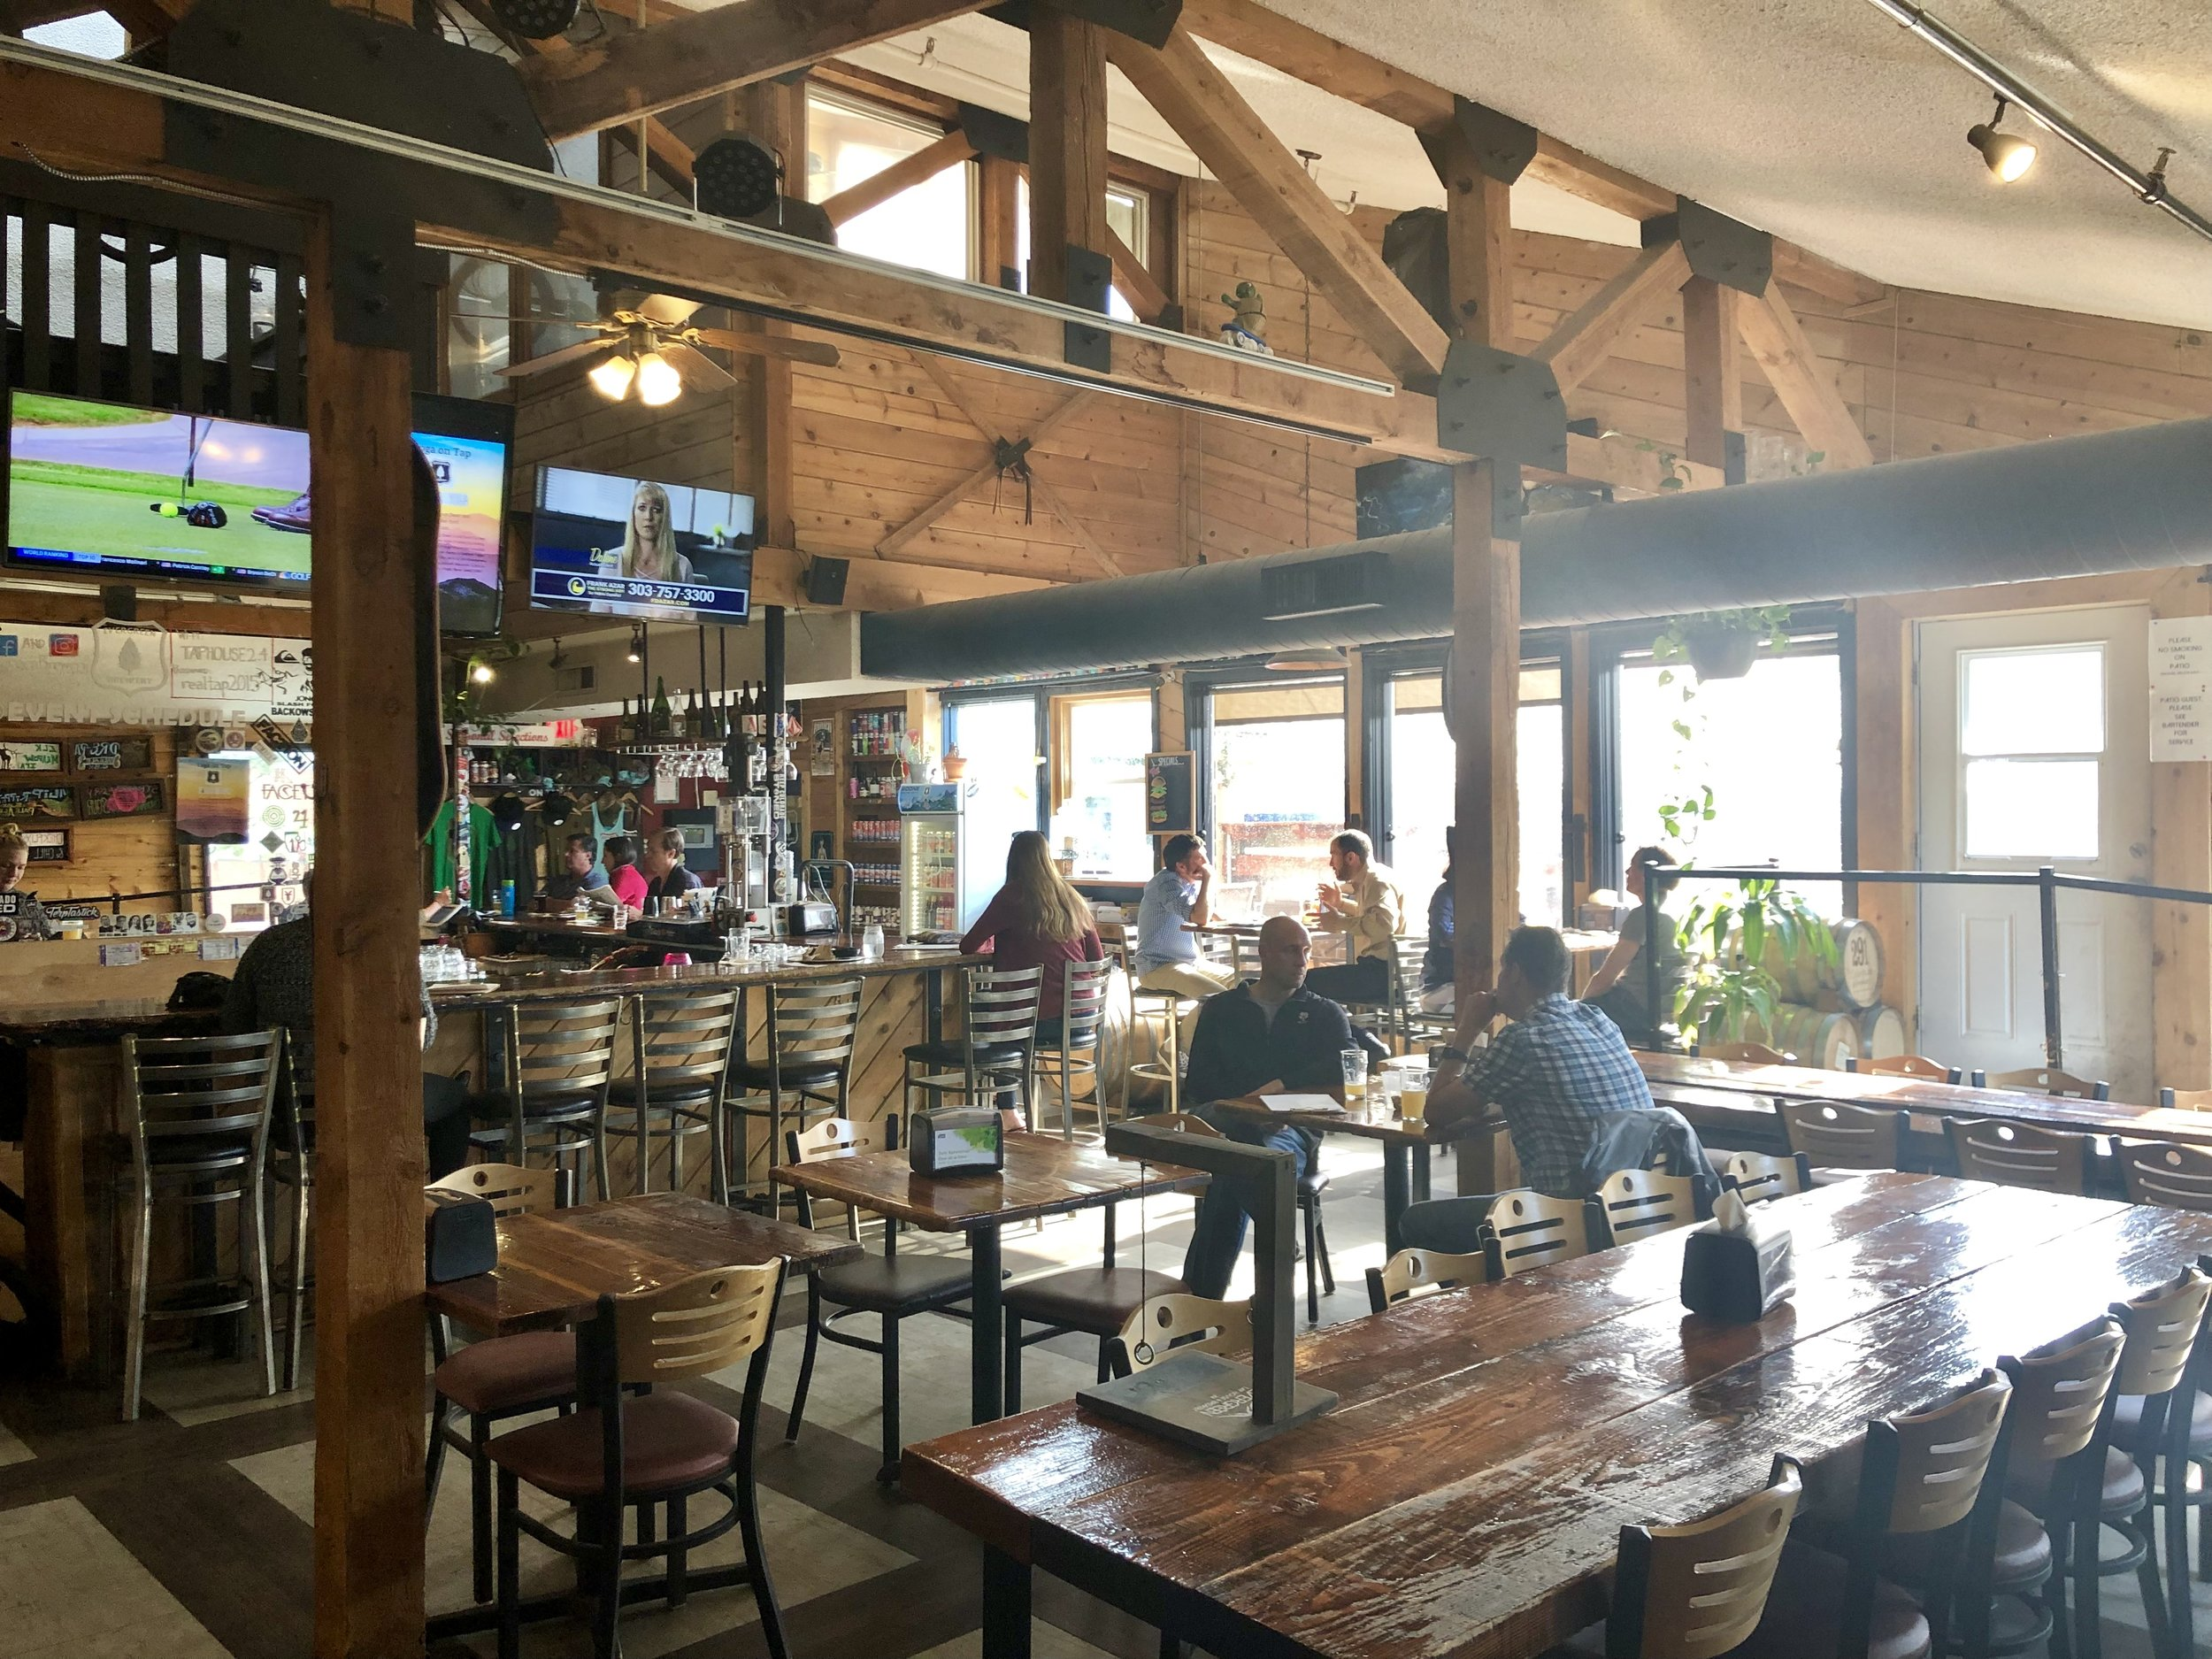 Evergreen Brewery's inside bar area boasts tall ceilings, wood accents, and a great mountain vibe. ©Suzanne Brown 2019